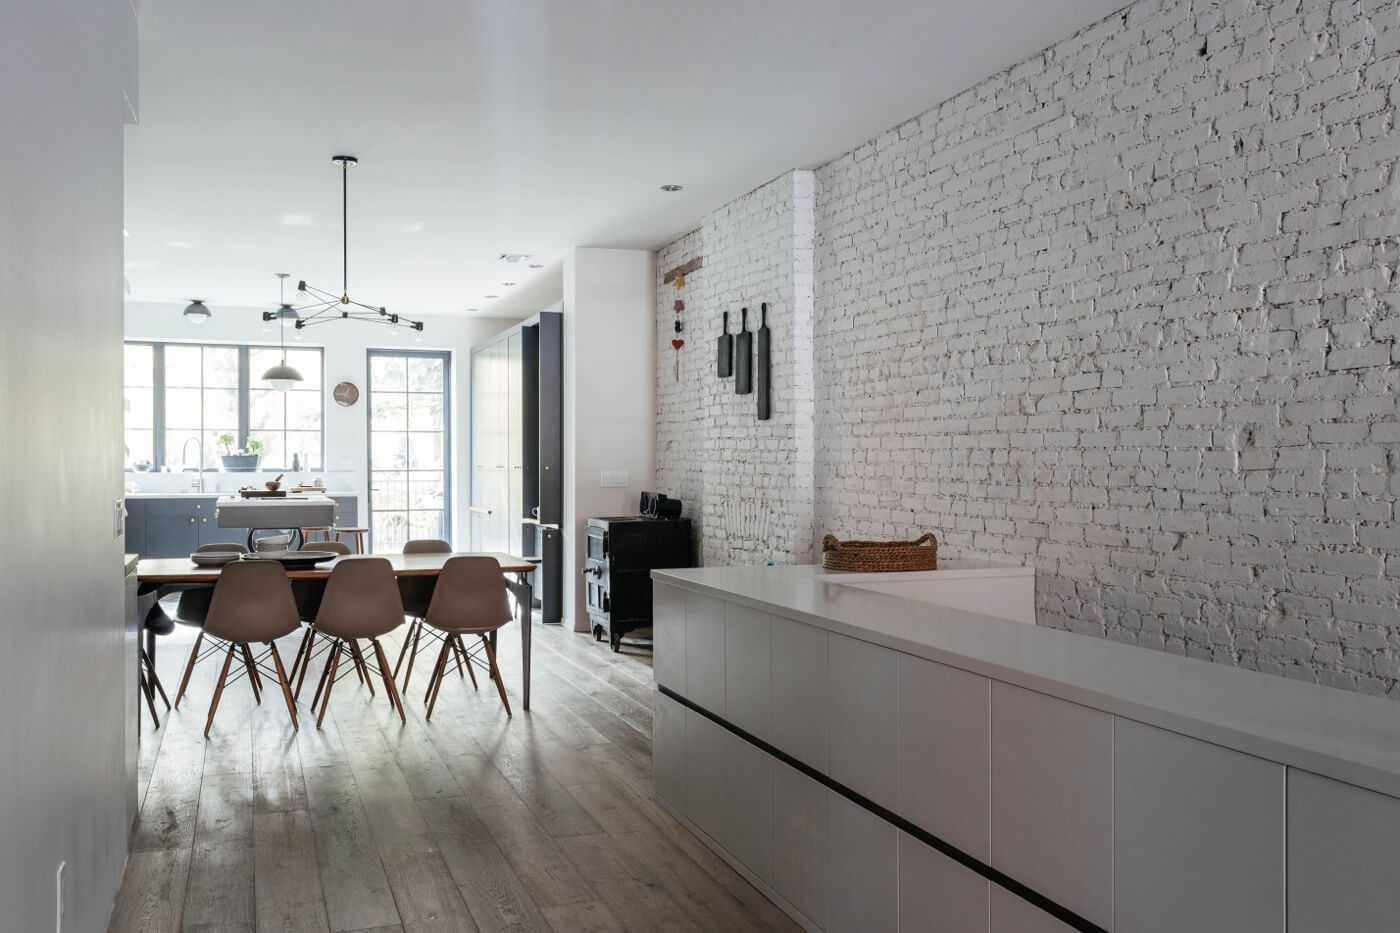 Interior Design Ideas Brooklyn Townhouse Renovation Peter and Lovleen Cavanagh